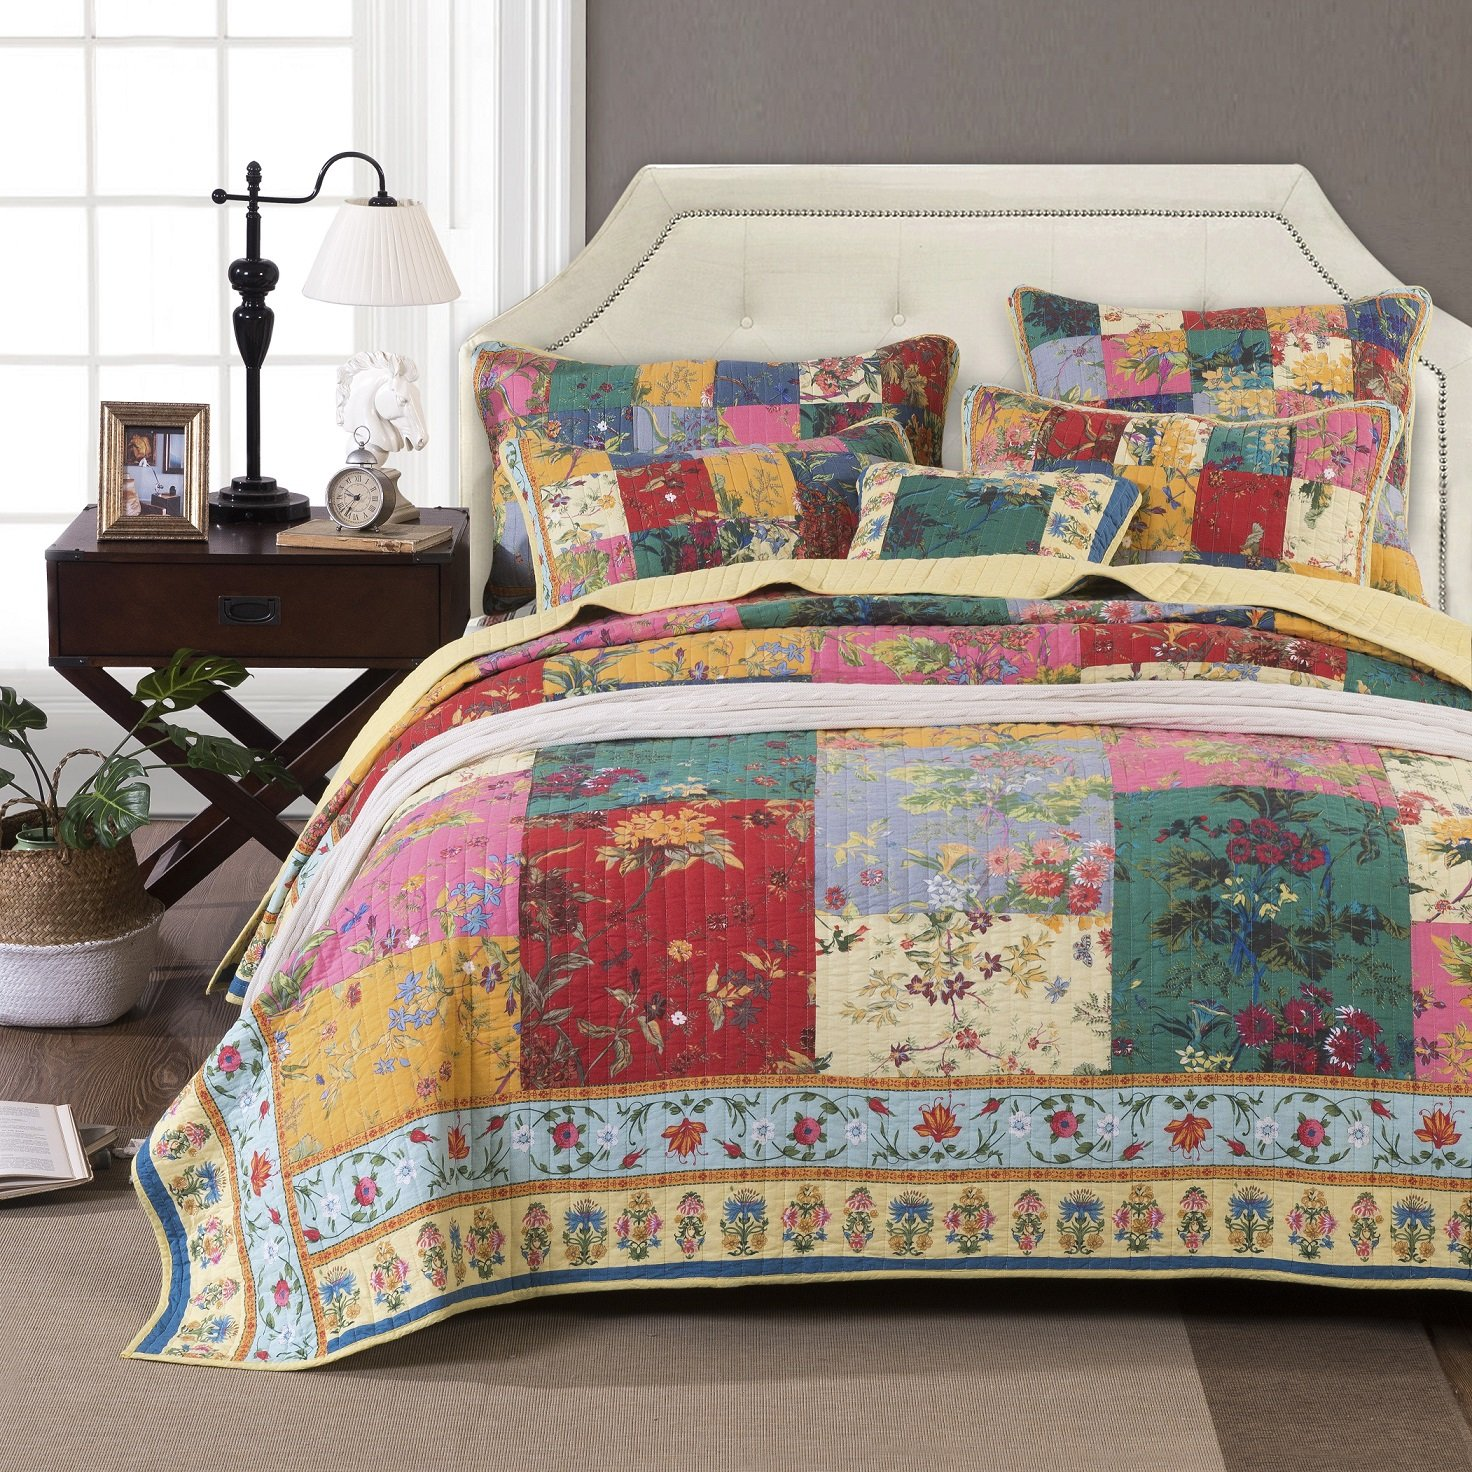 Amazon.com: Tache Home Fashion Paradise Medley Patchwork Quilted Bedspread  Set - Bright Vibrant Multi Colorful Yellow Floral Print - Queen - 3-Pieces:  Home ...